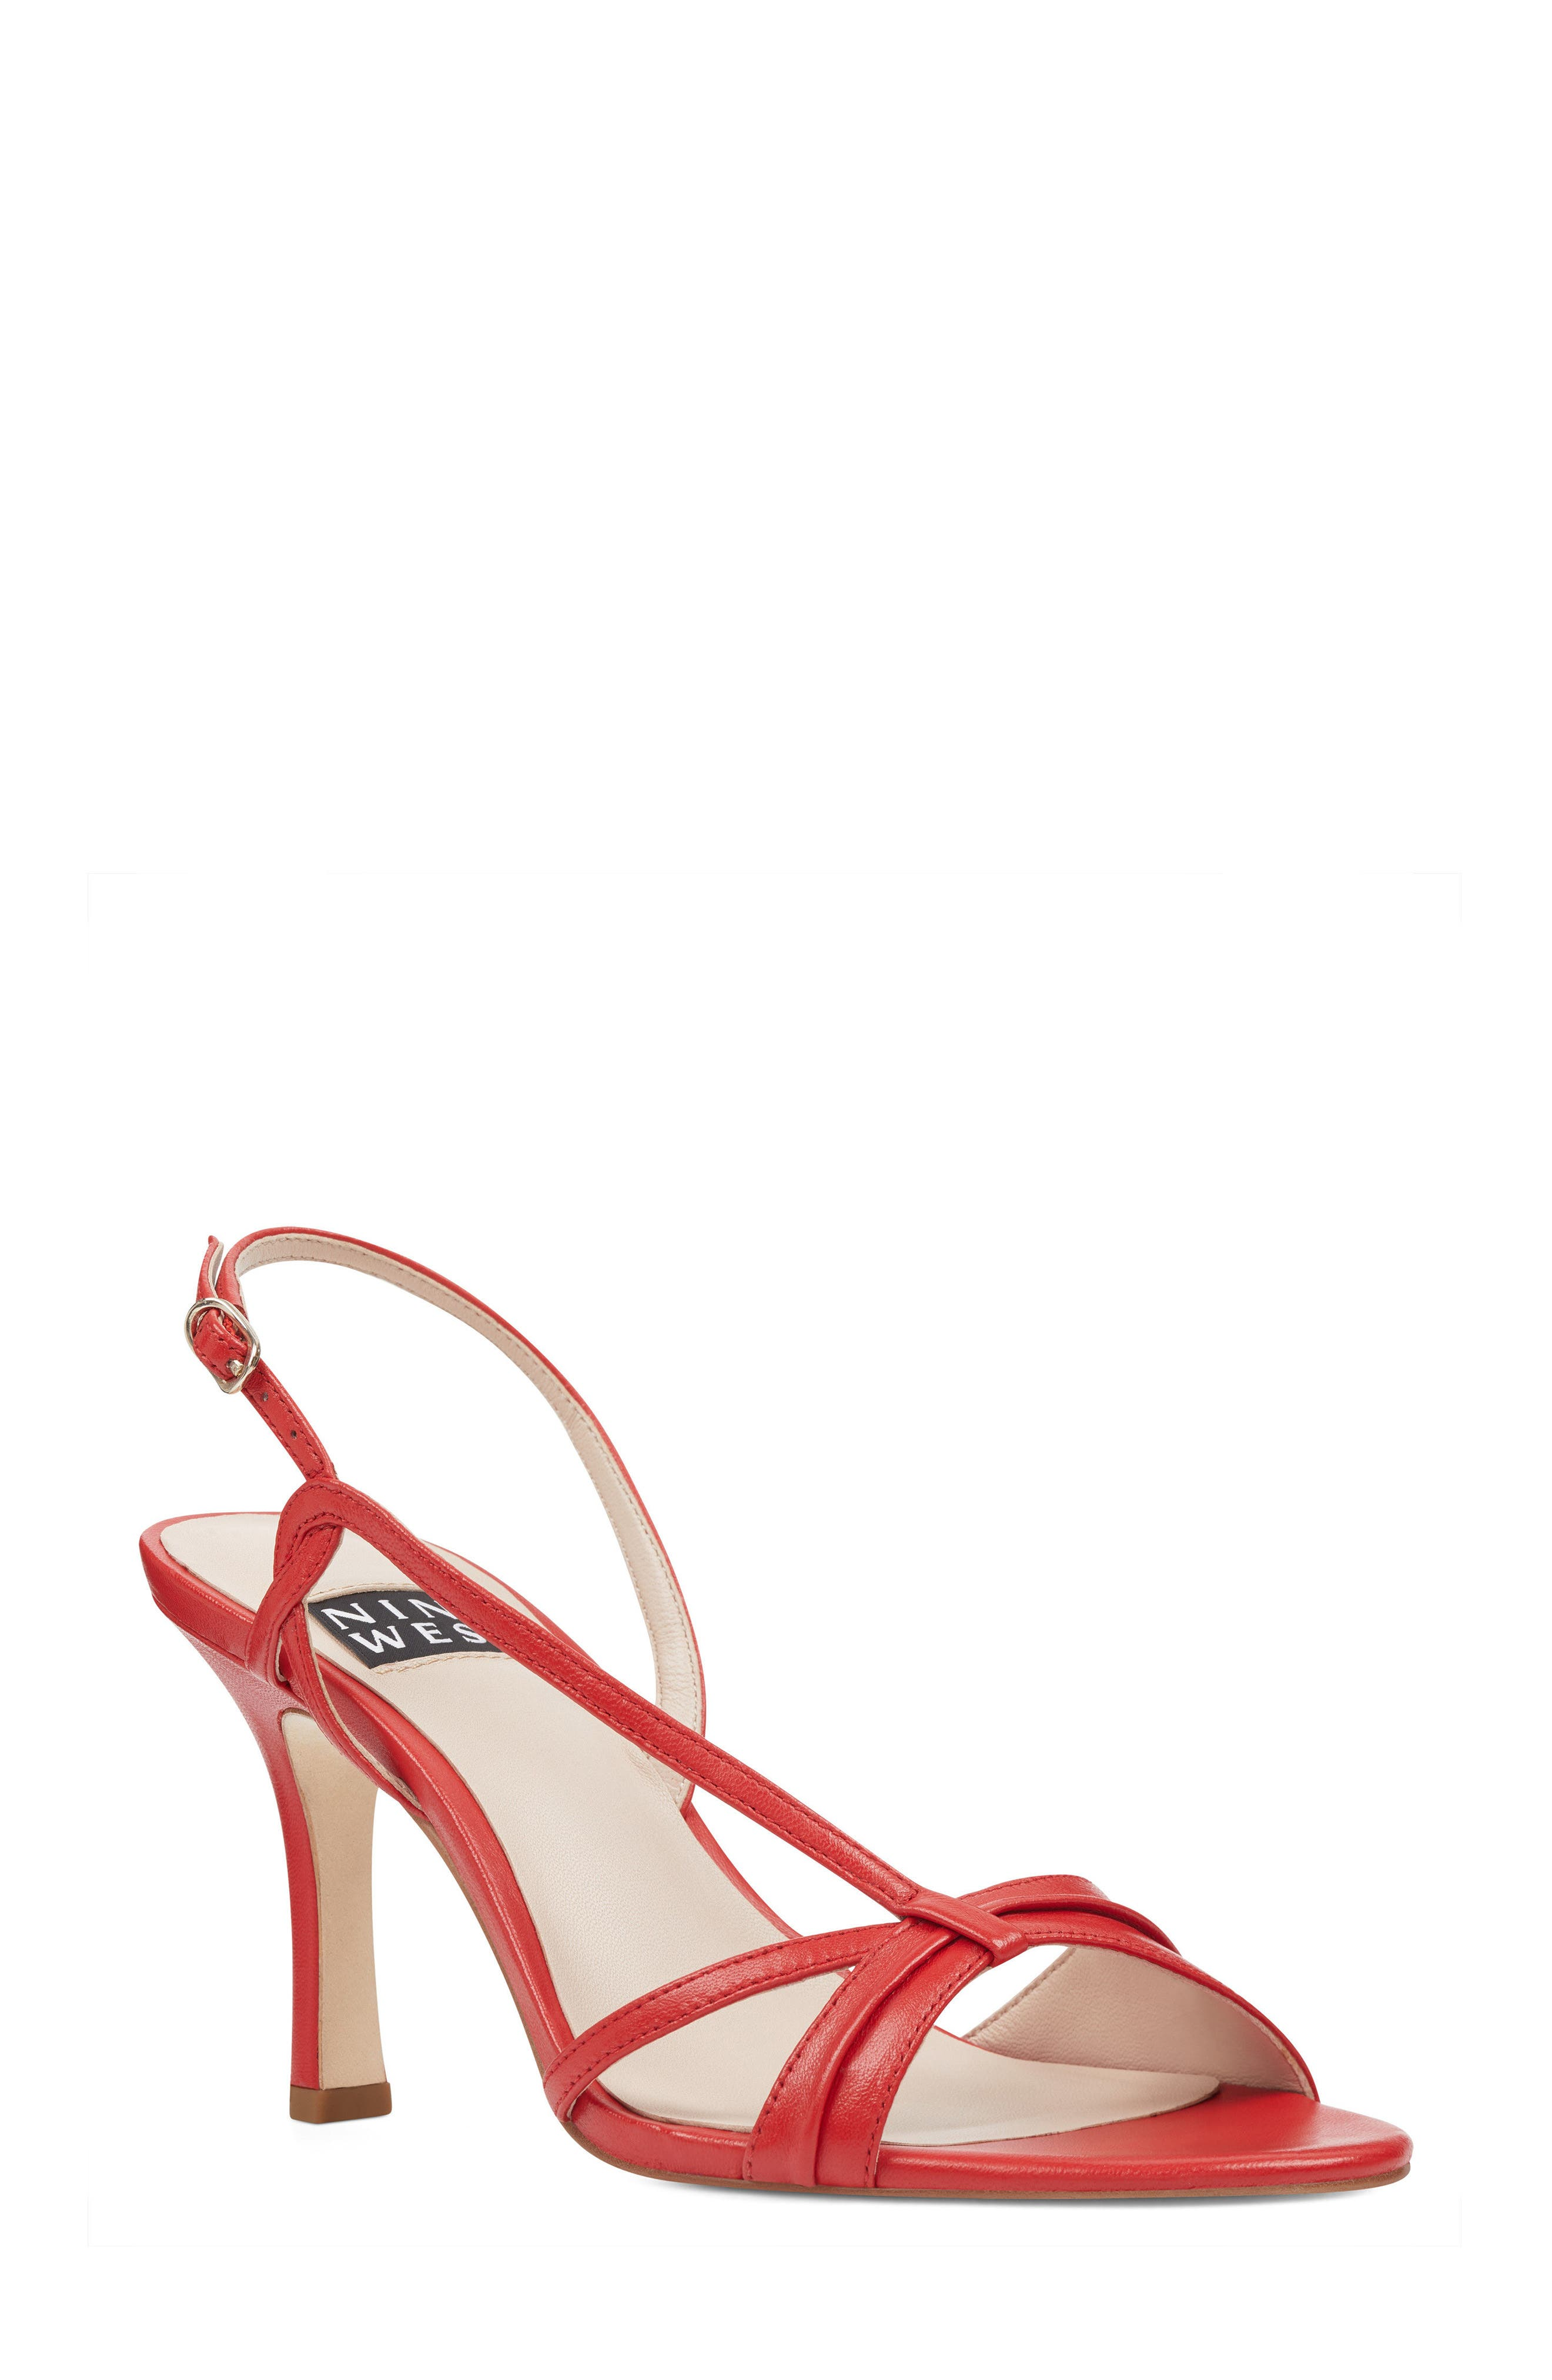 Accolia - 40th Anniversary Capsule Collection Sandal,                             Main thumbnail 1, color,                             Red Leather